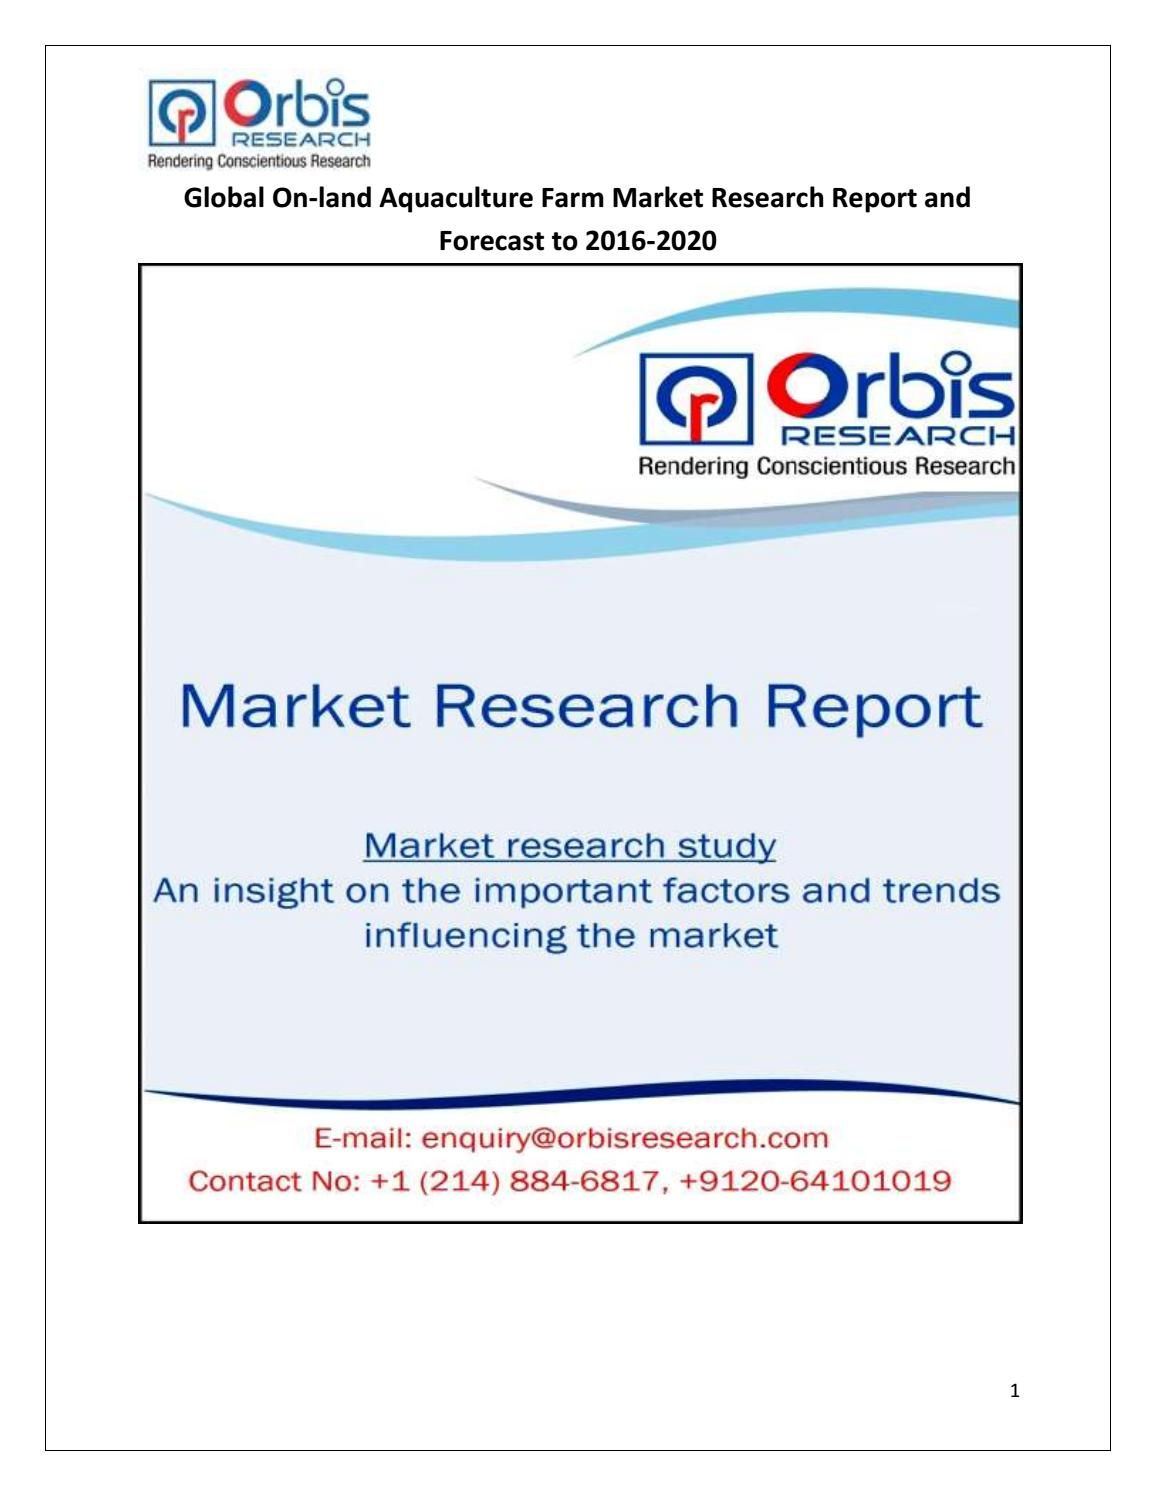 Global OnLand Aquaculture Farm Industry  Forecast Report